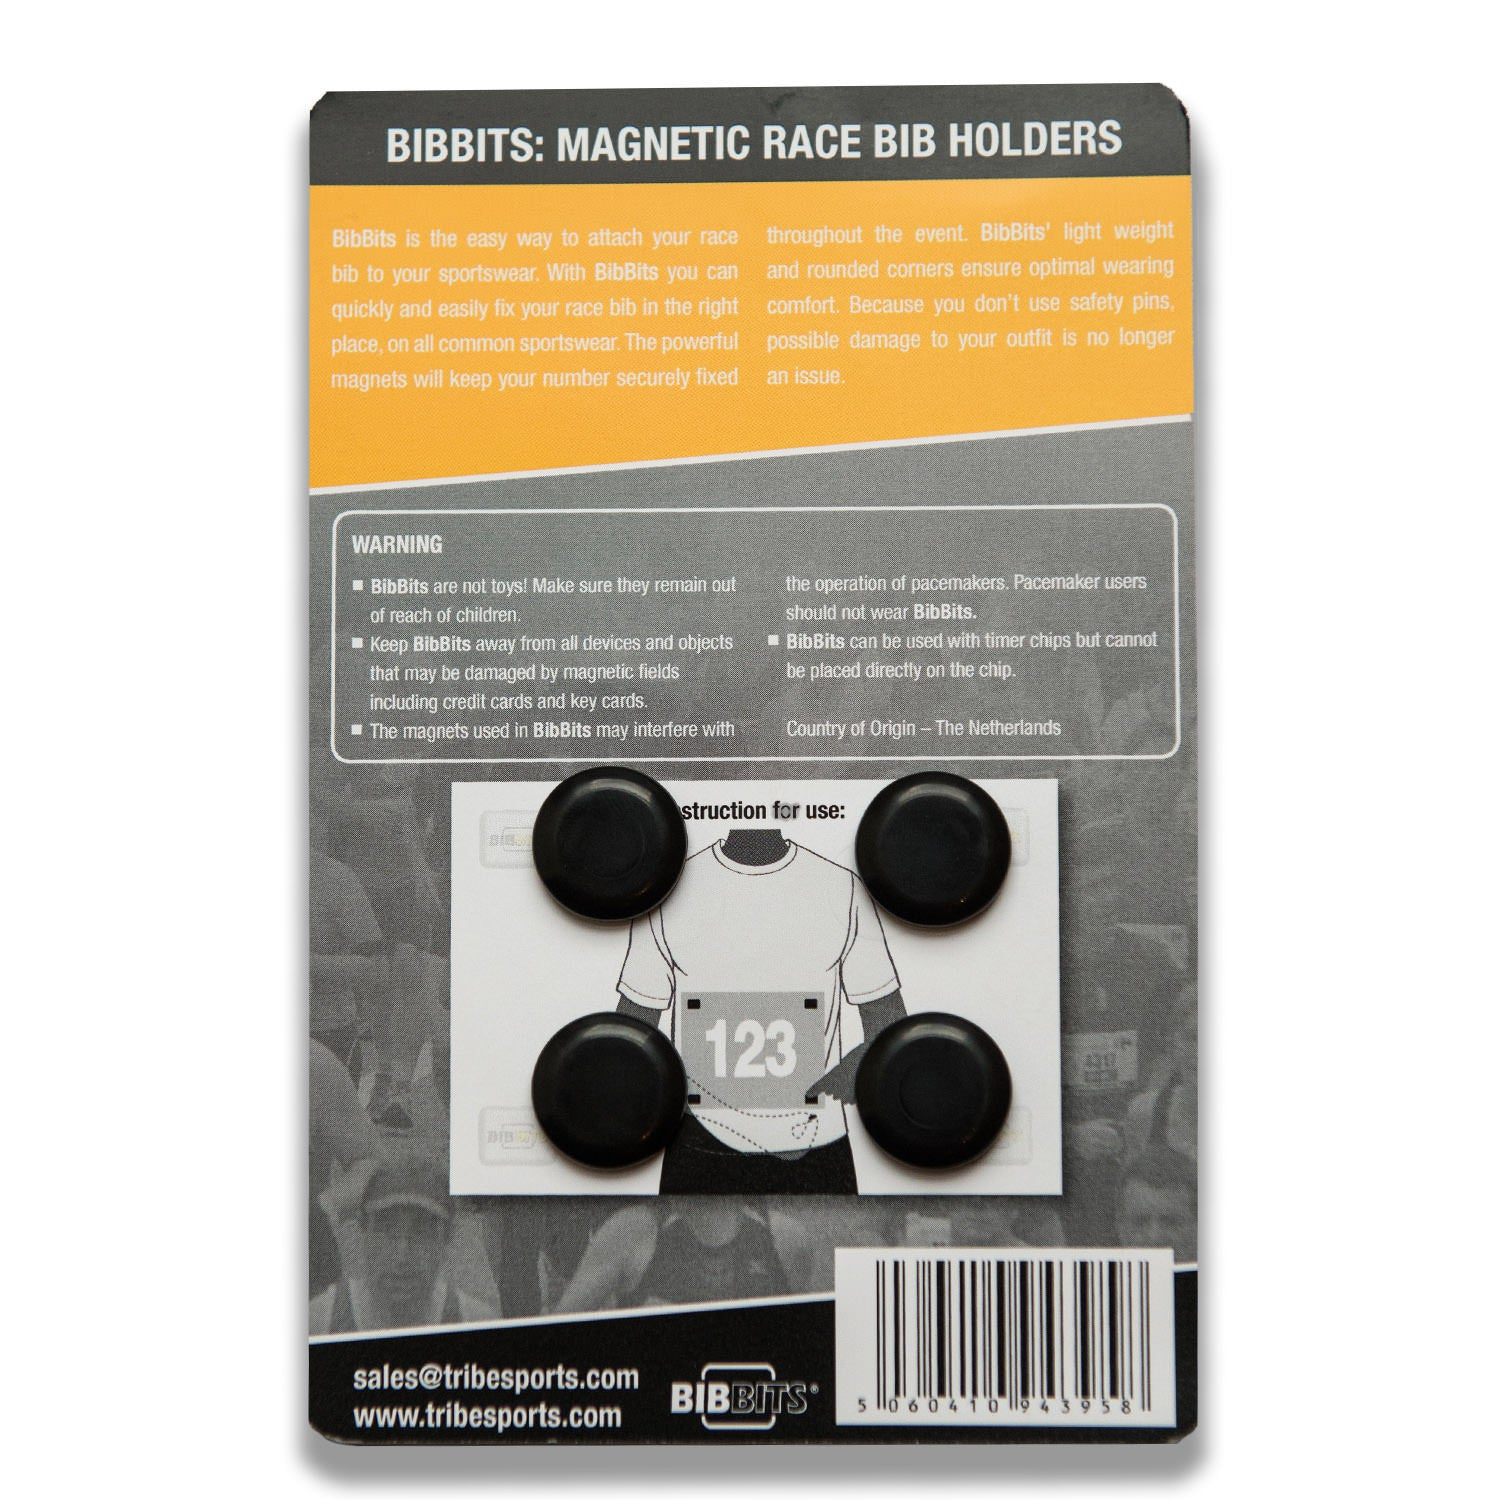 Tribesports Bibbits - Magnetic Race Bib Holders , Tribesports - 4